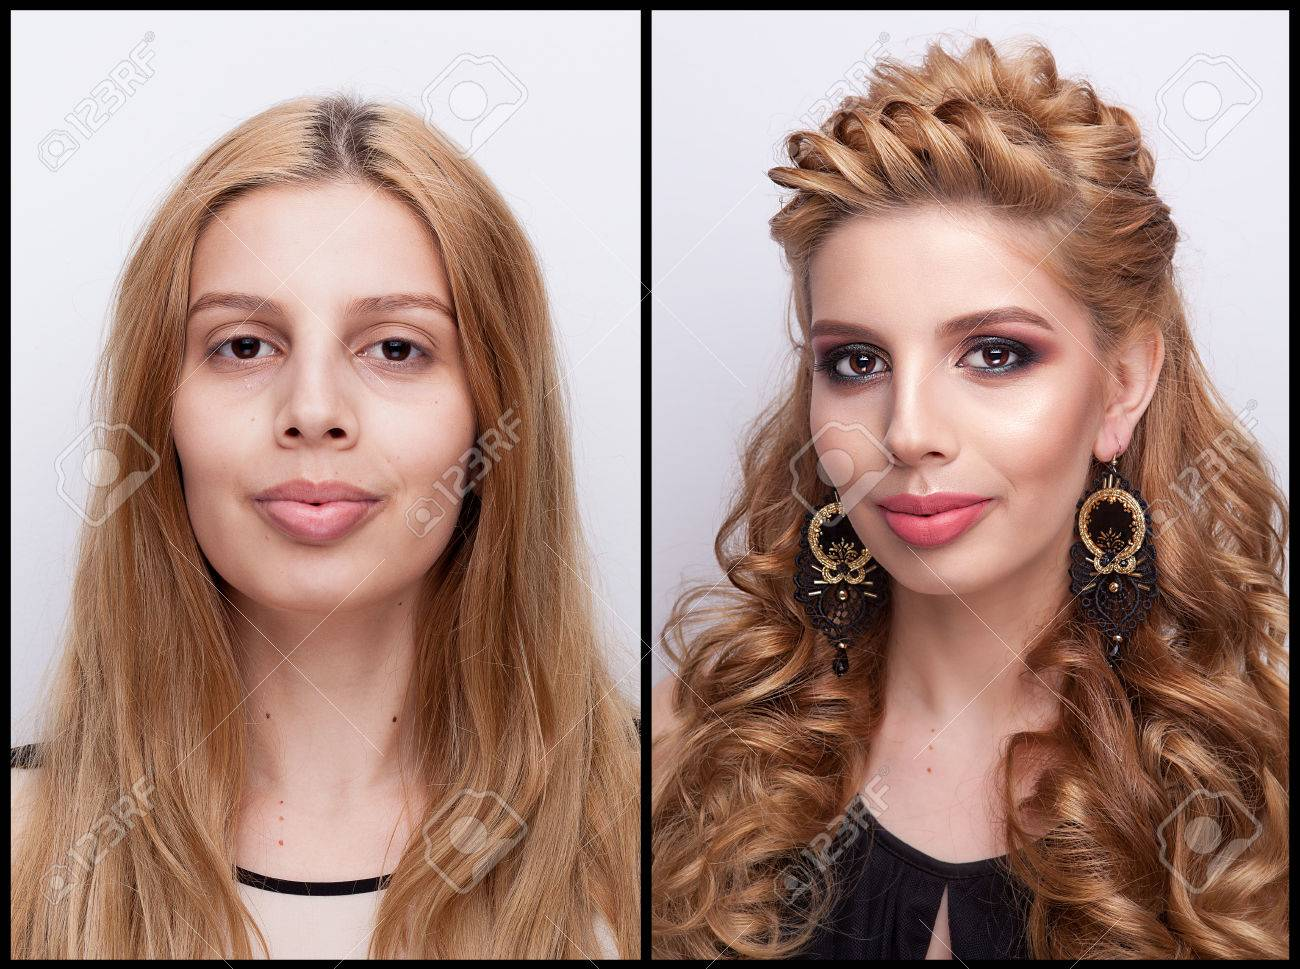 Woman Before And After Makeup And Hairstyle In Studio Photo Stock